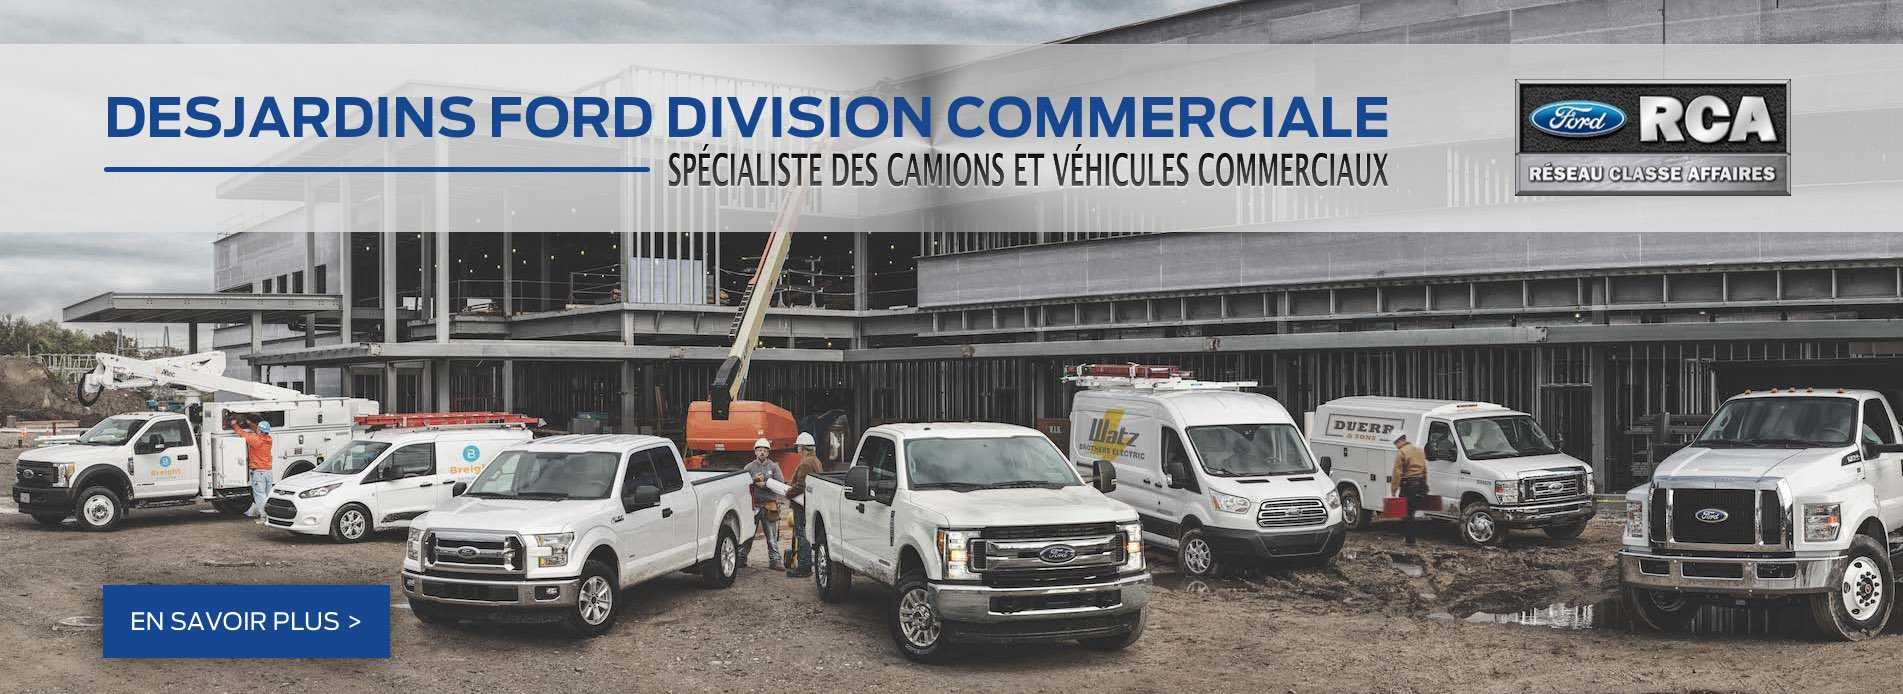 Desjardins Ford Division Commercial